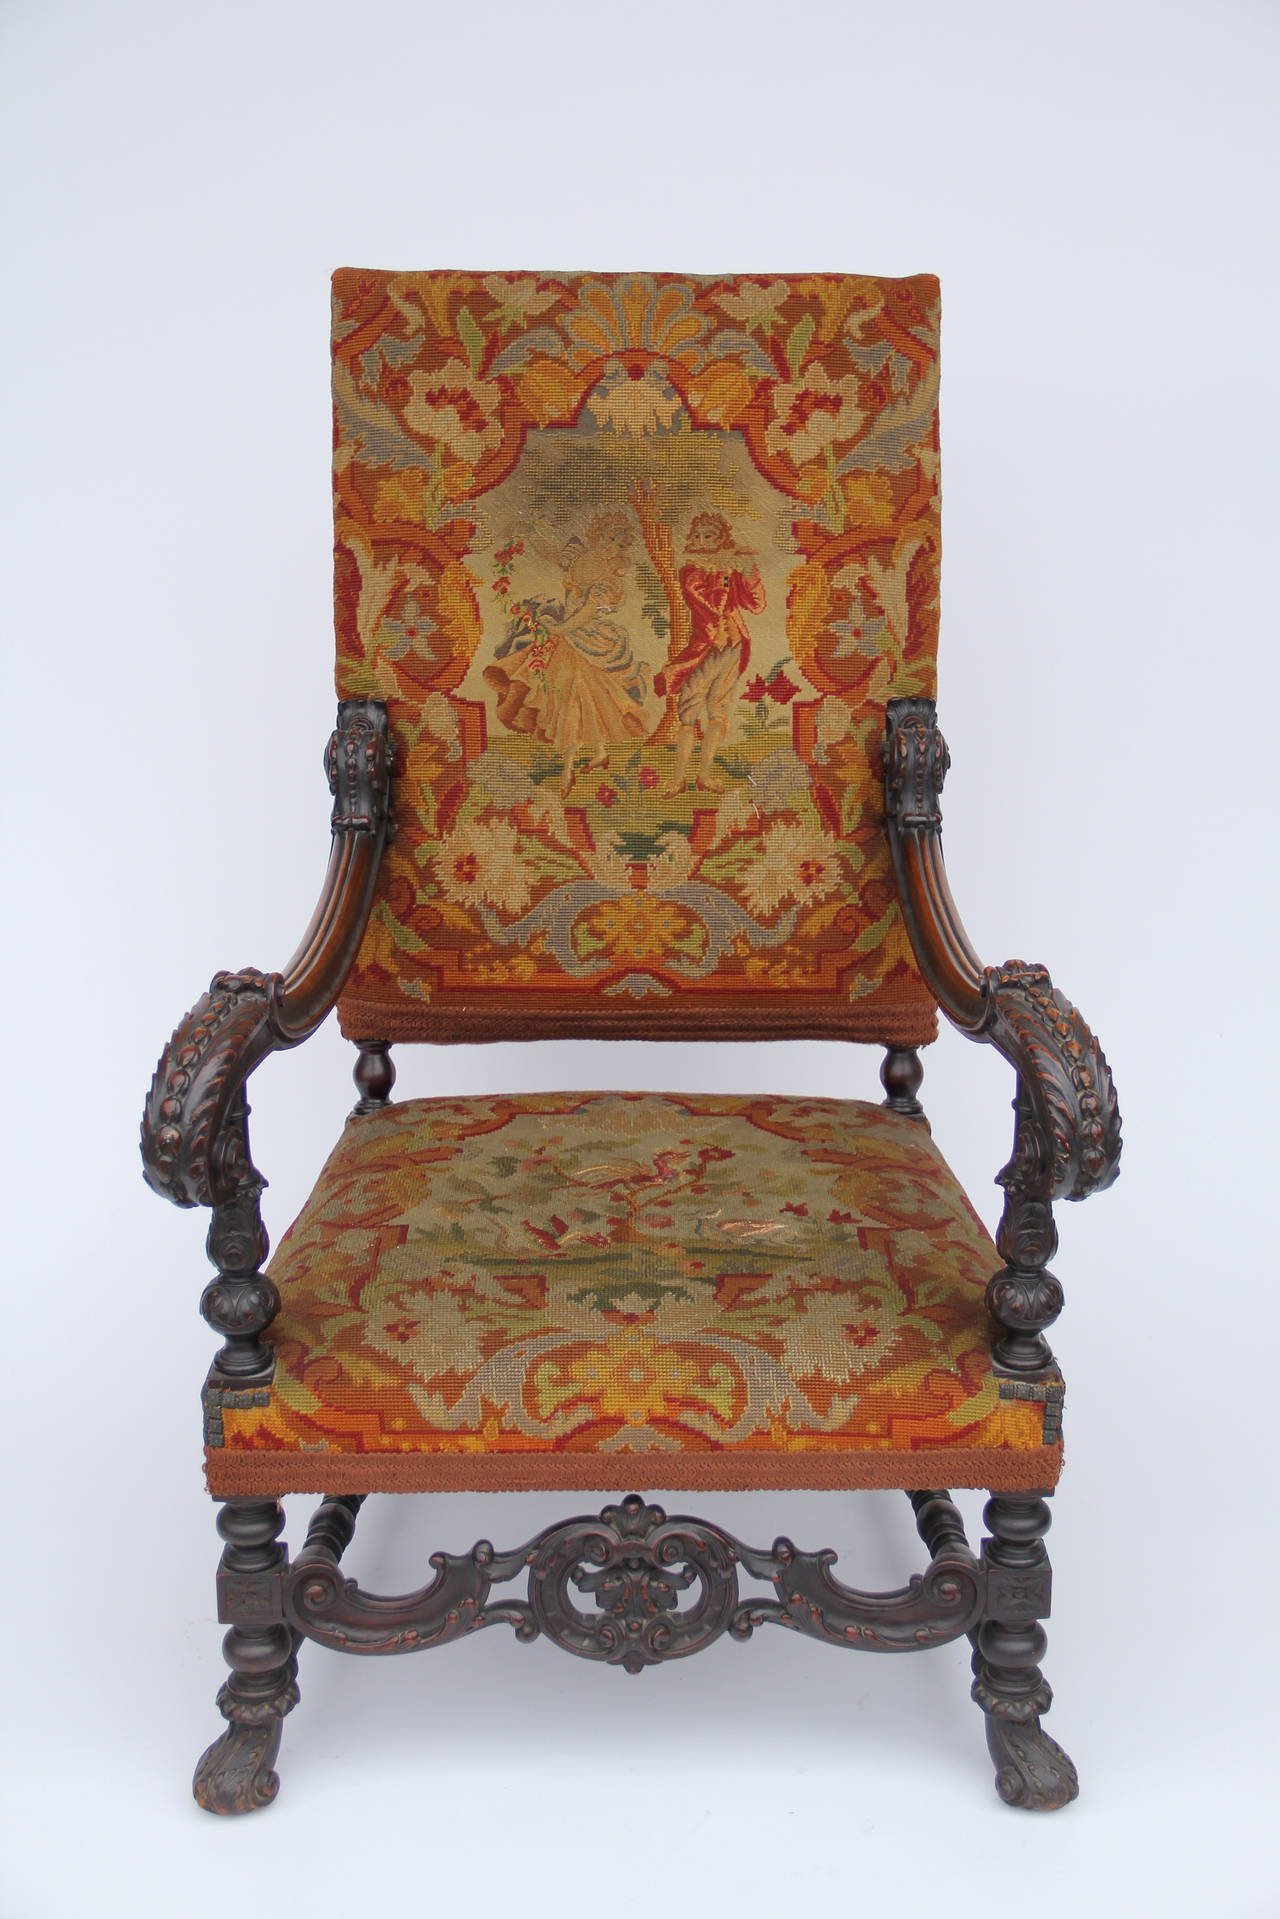 Fauteuils Louis Xiv Antique Louis Xiv Style Carved Fauteuil High Back Armchair With Needlepoint